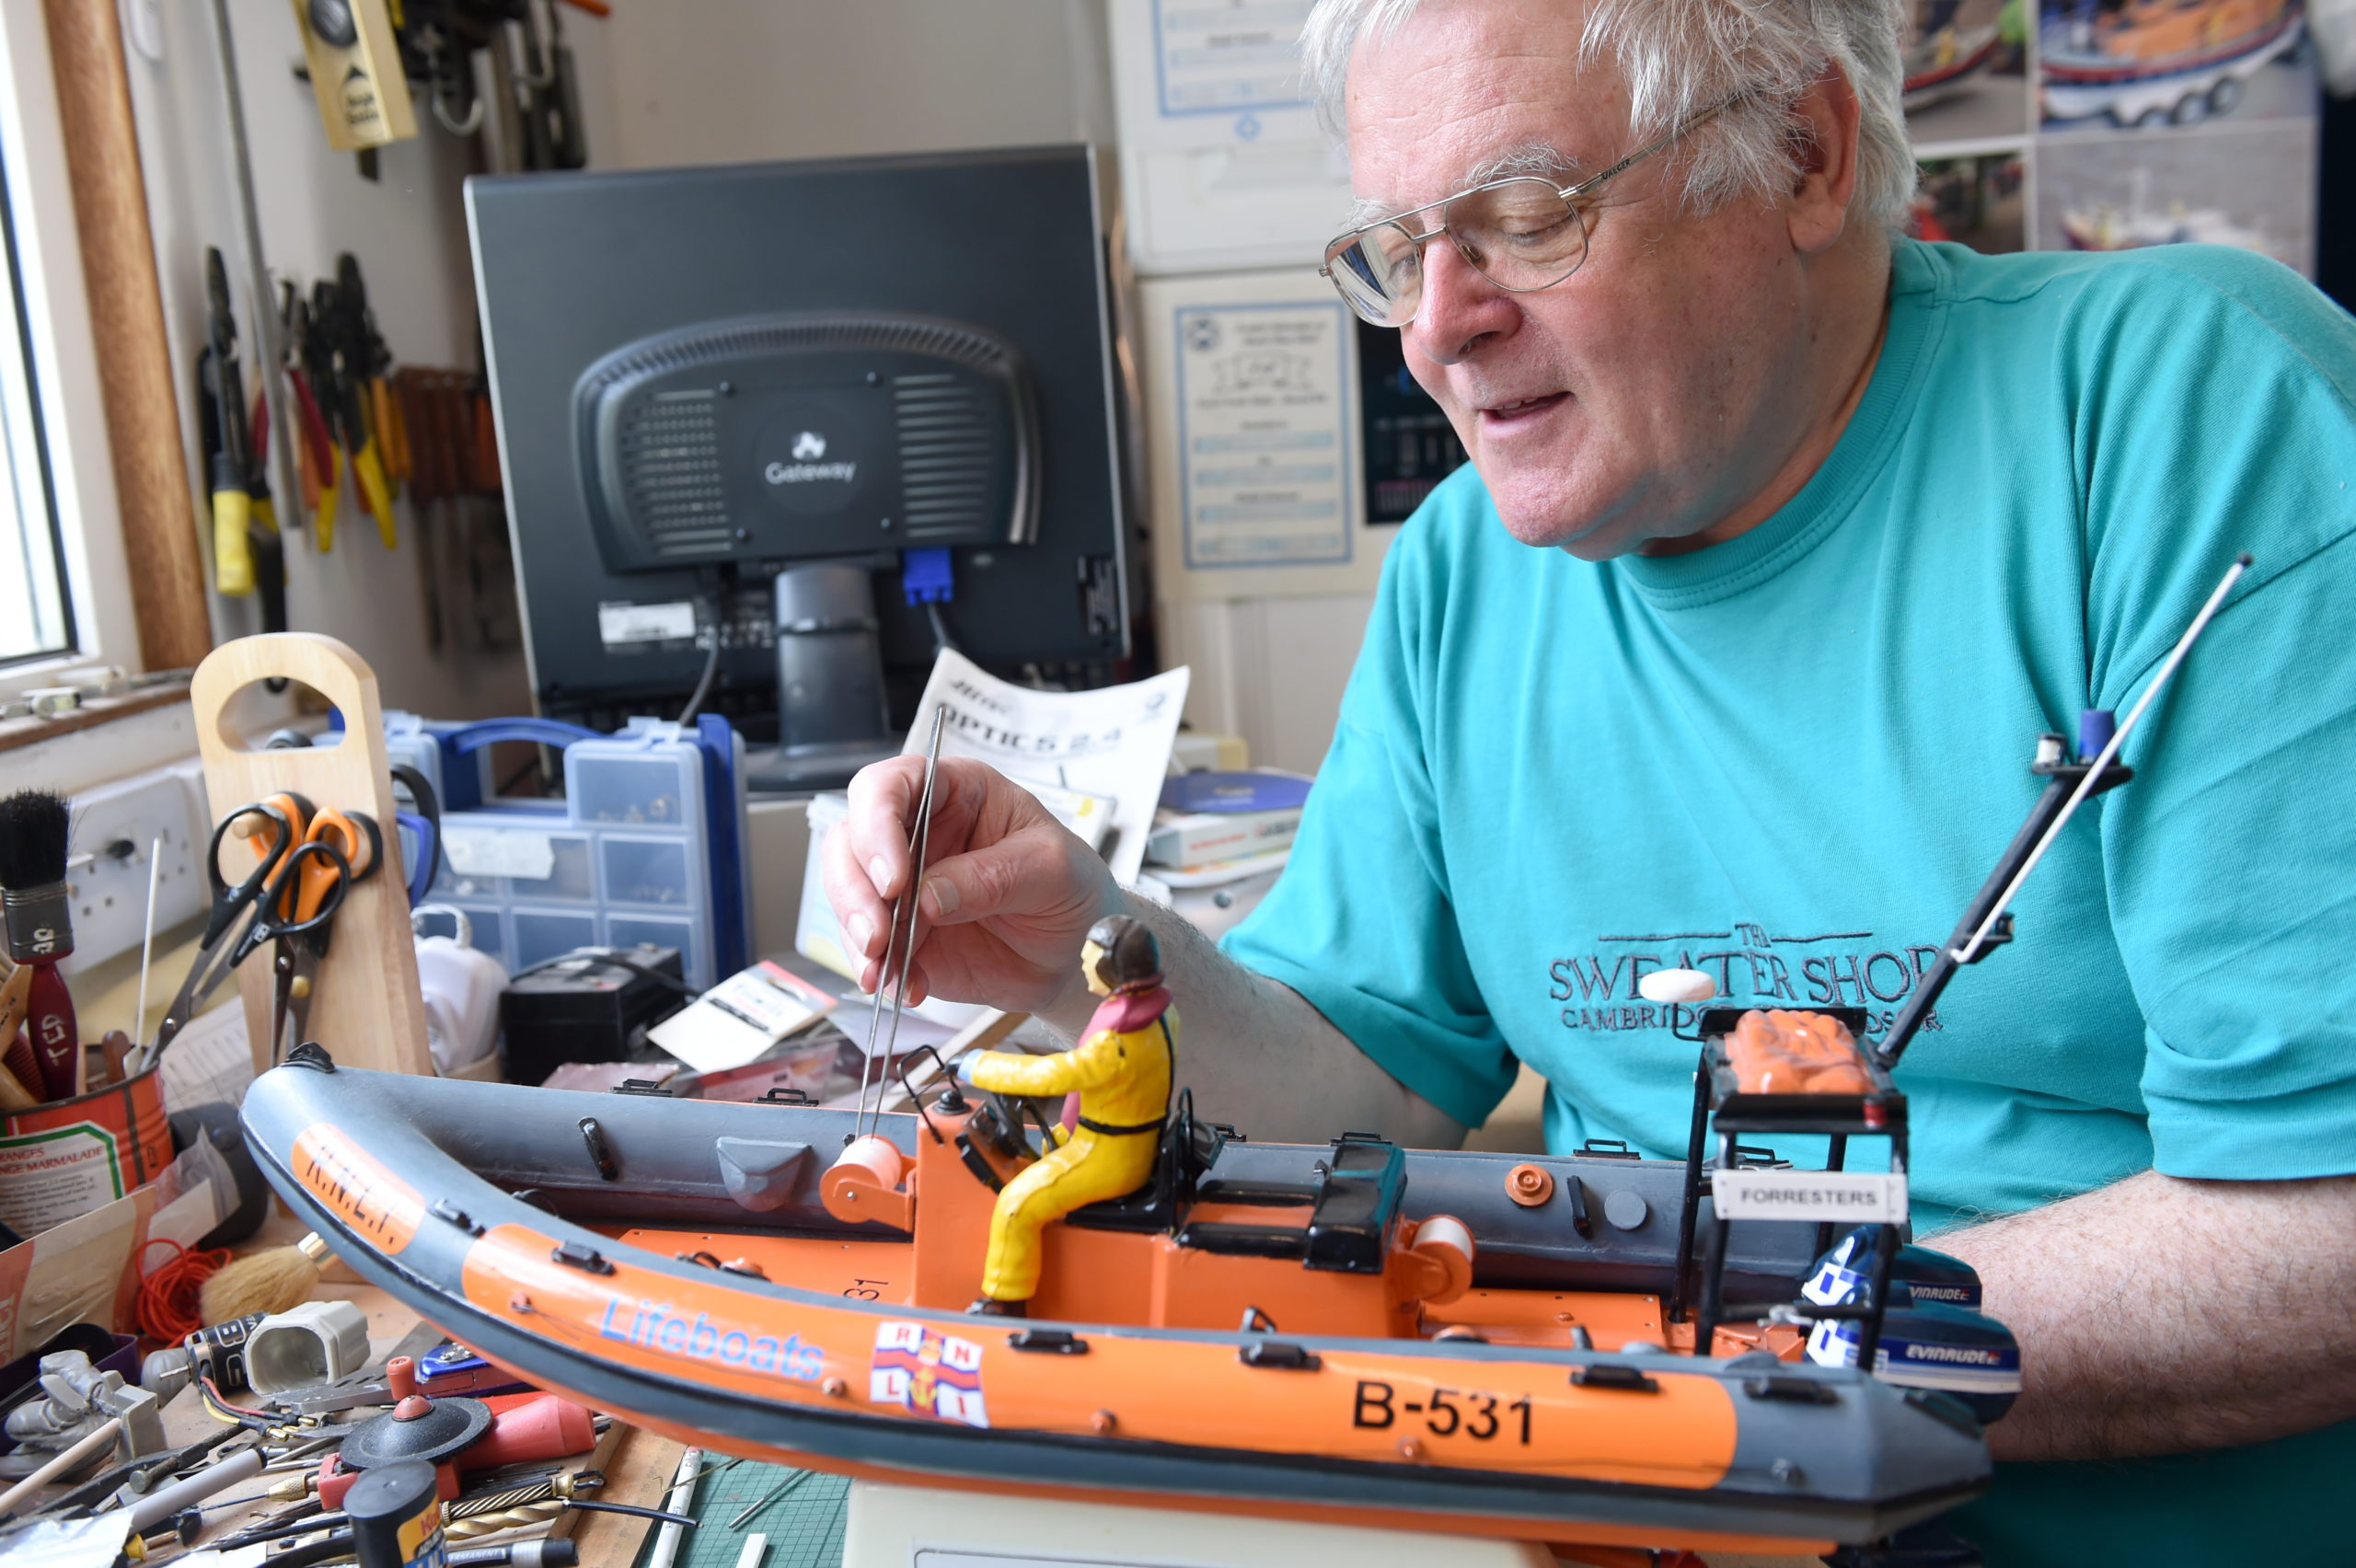 Modelmaker Ted Miller shows off his hand crafted collection of lifeboats which he has built. Picture by Sandy McCook.